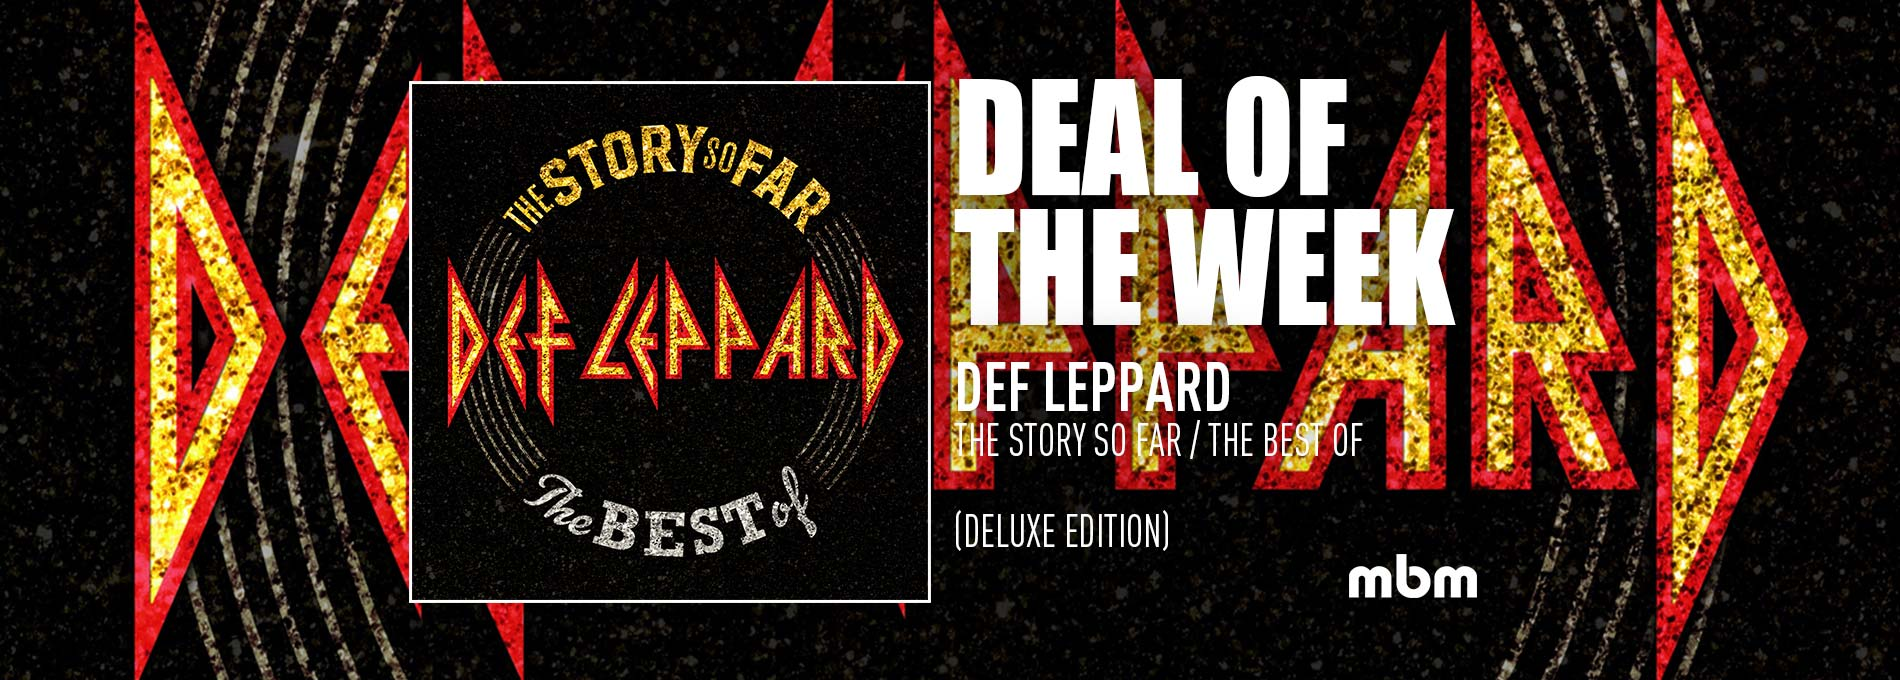 Deal Of The Week: DEF LEPPARD - The Story So Far / The Best Of (Deluxe Edition)